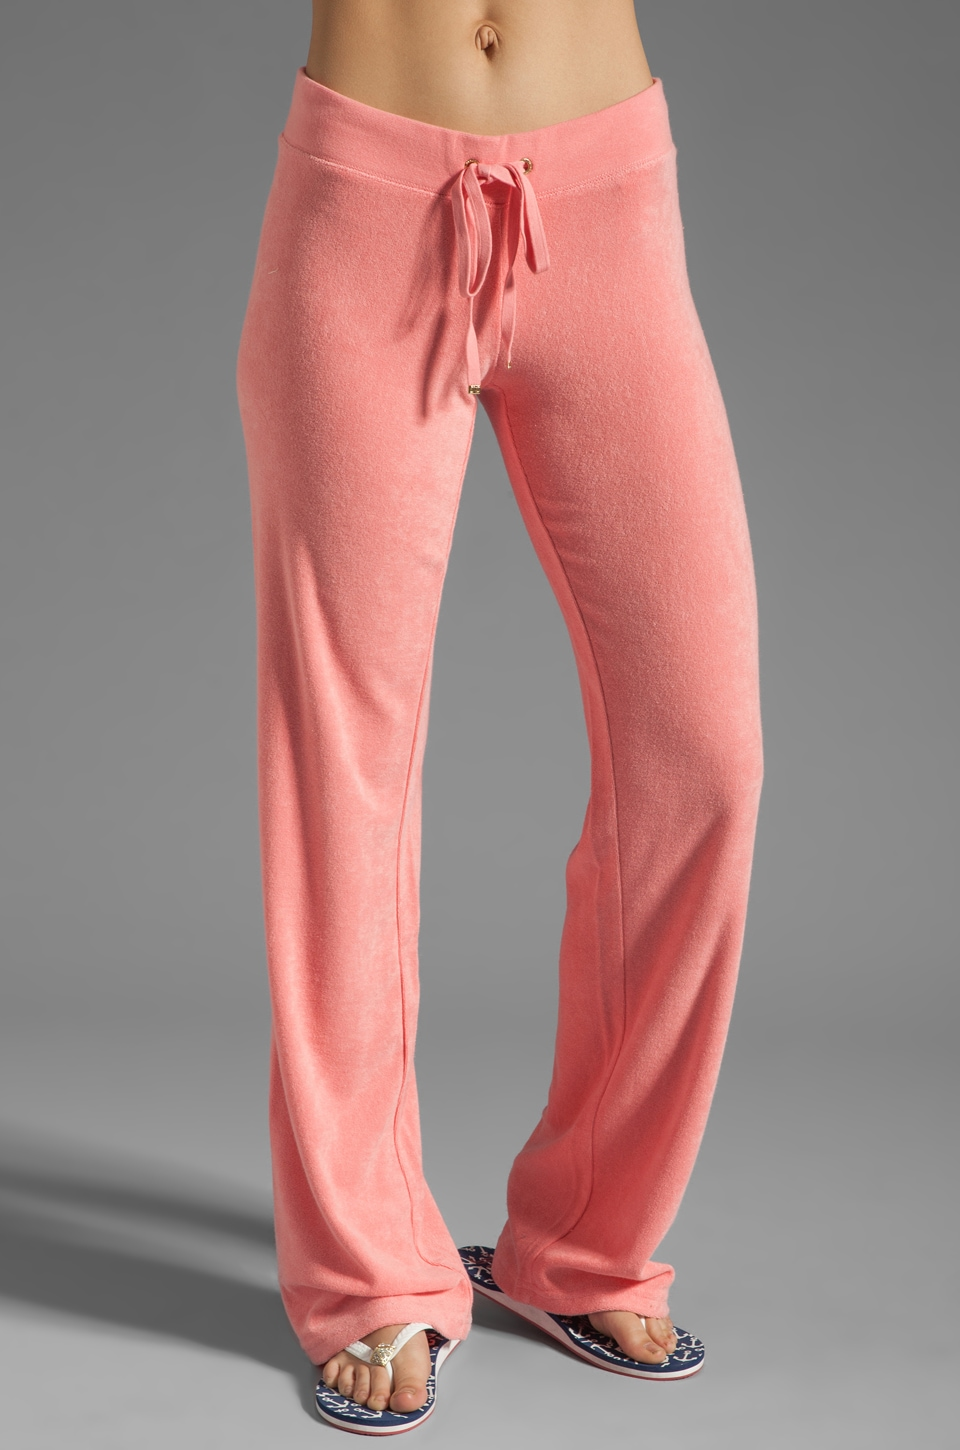 Juicy Couture Terry Original Leg Pant in Bubblegum